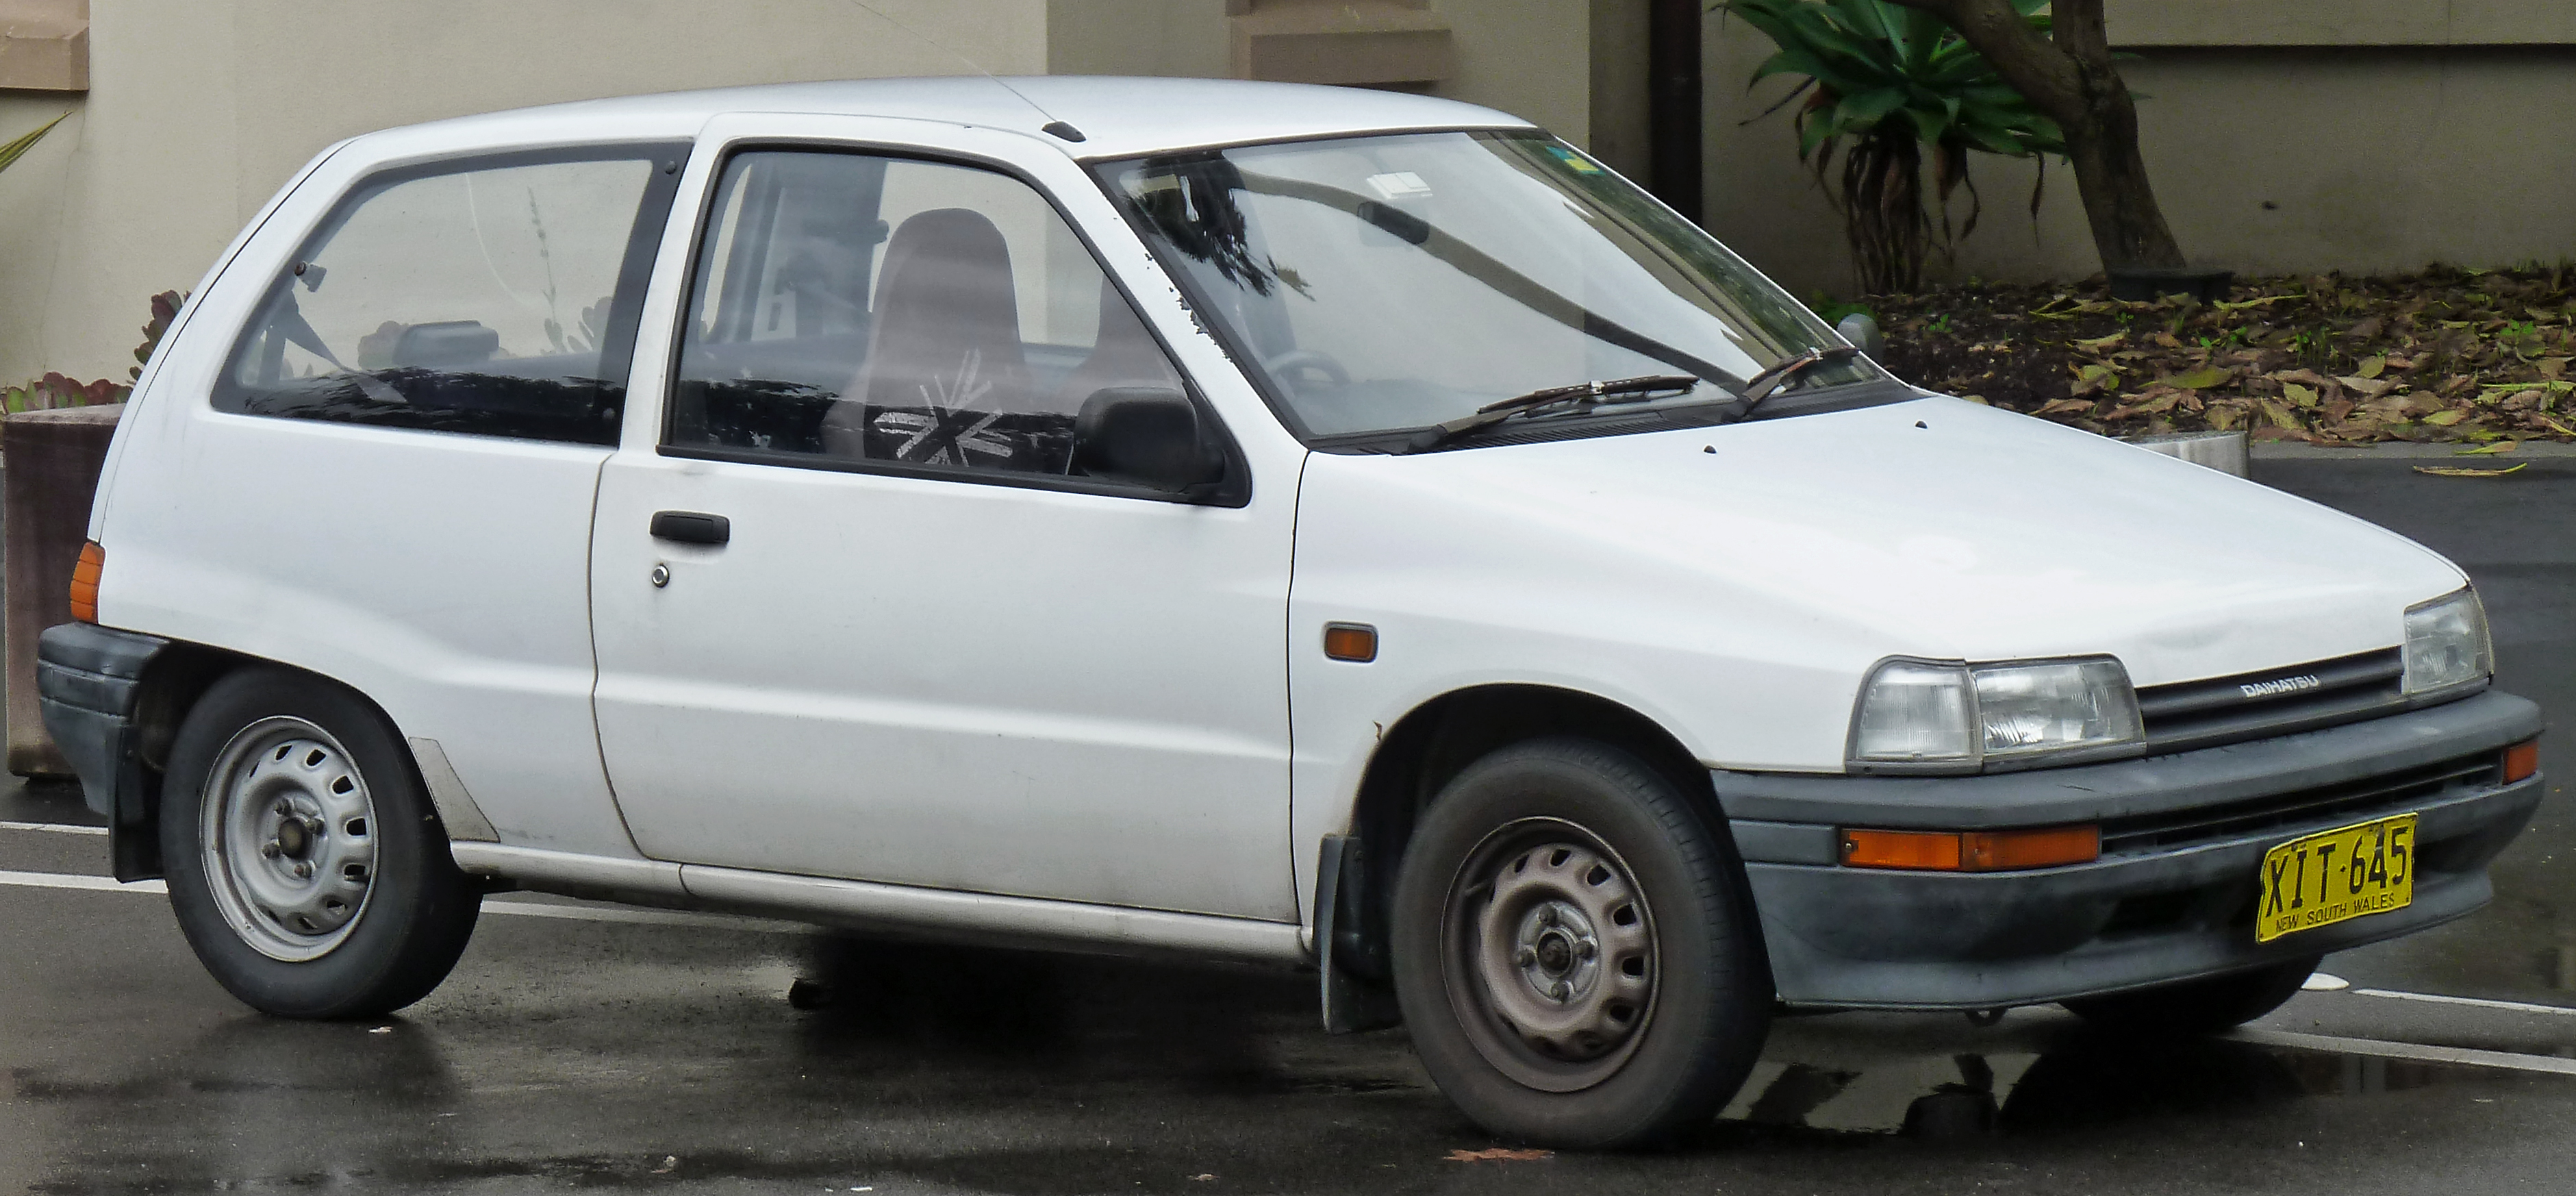 Daihatsu charade 1987 1993 prices in pakistan pictures and daihatsu charade 1987 exterior front side view vanachro Gallery